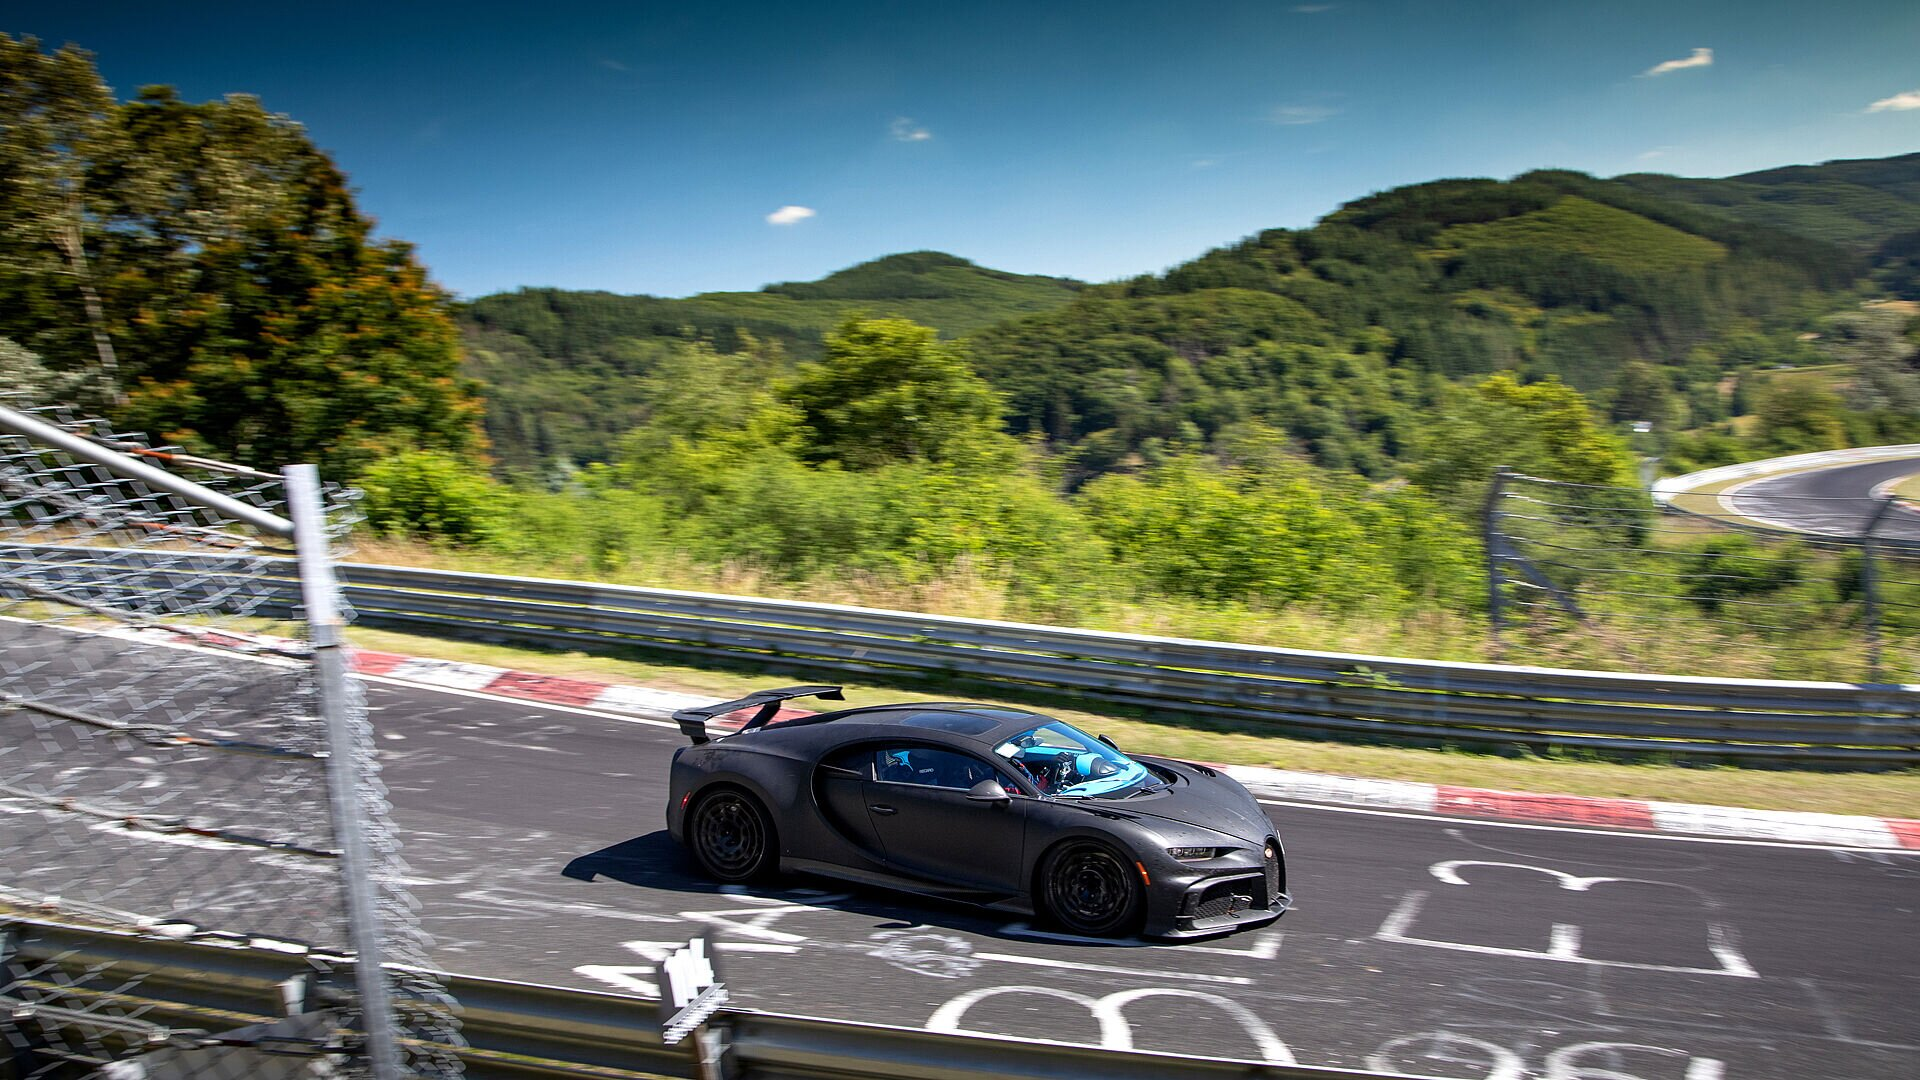 Chiron Pur Sport – final handling tests on the Nordschleife - Image 4